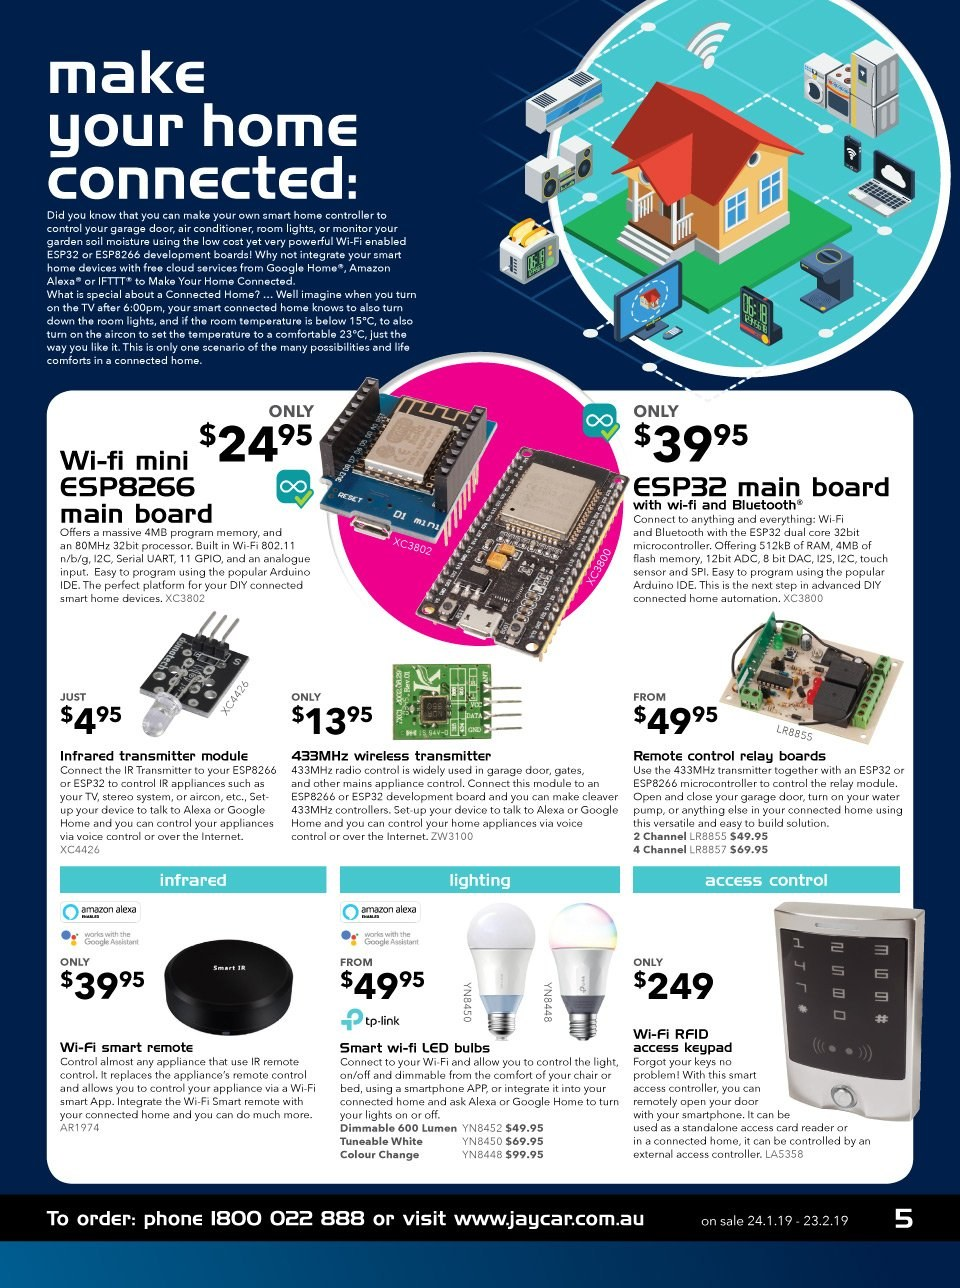 Jaycar Electronics catalogue and weekly specials 24 1 2019 - 23 2